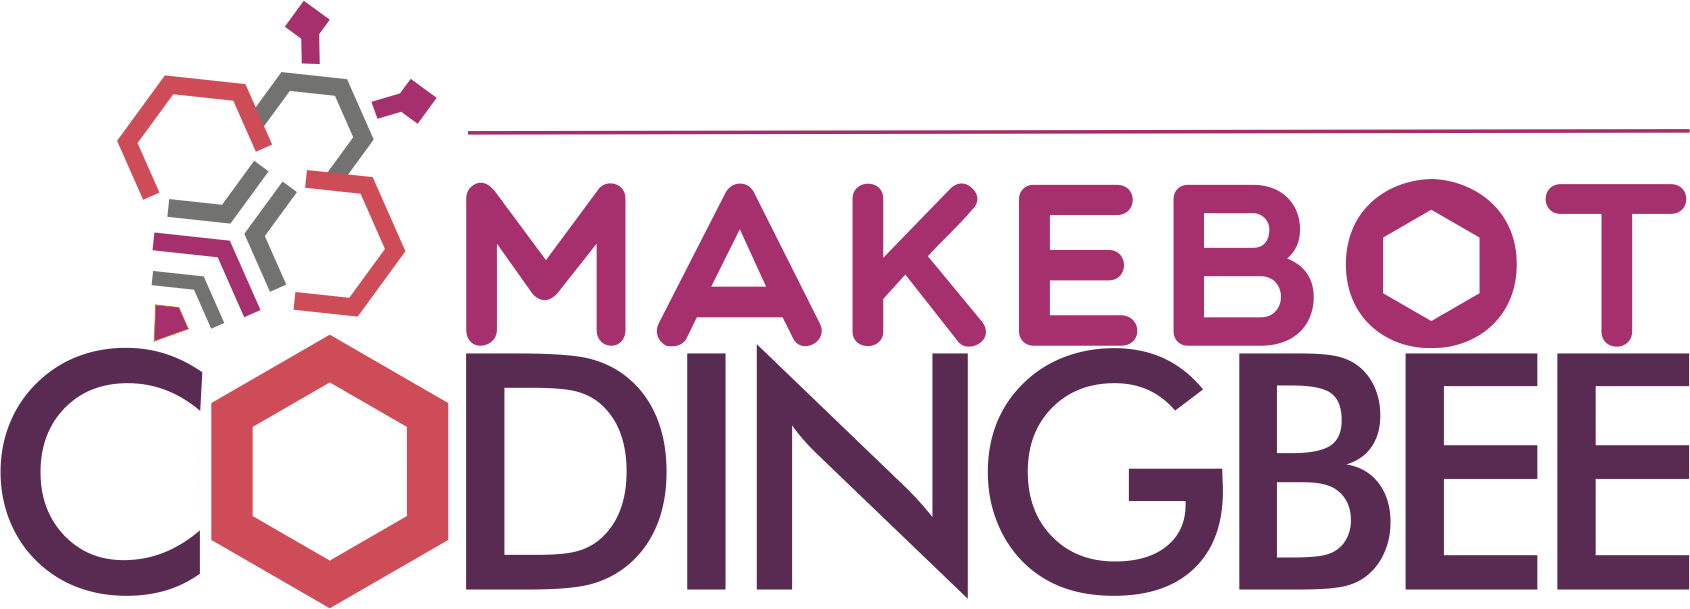 Makebot CodingBee Logo